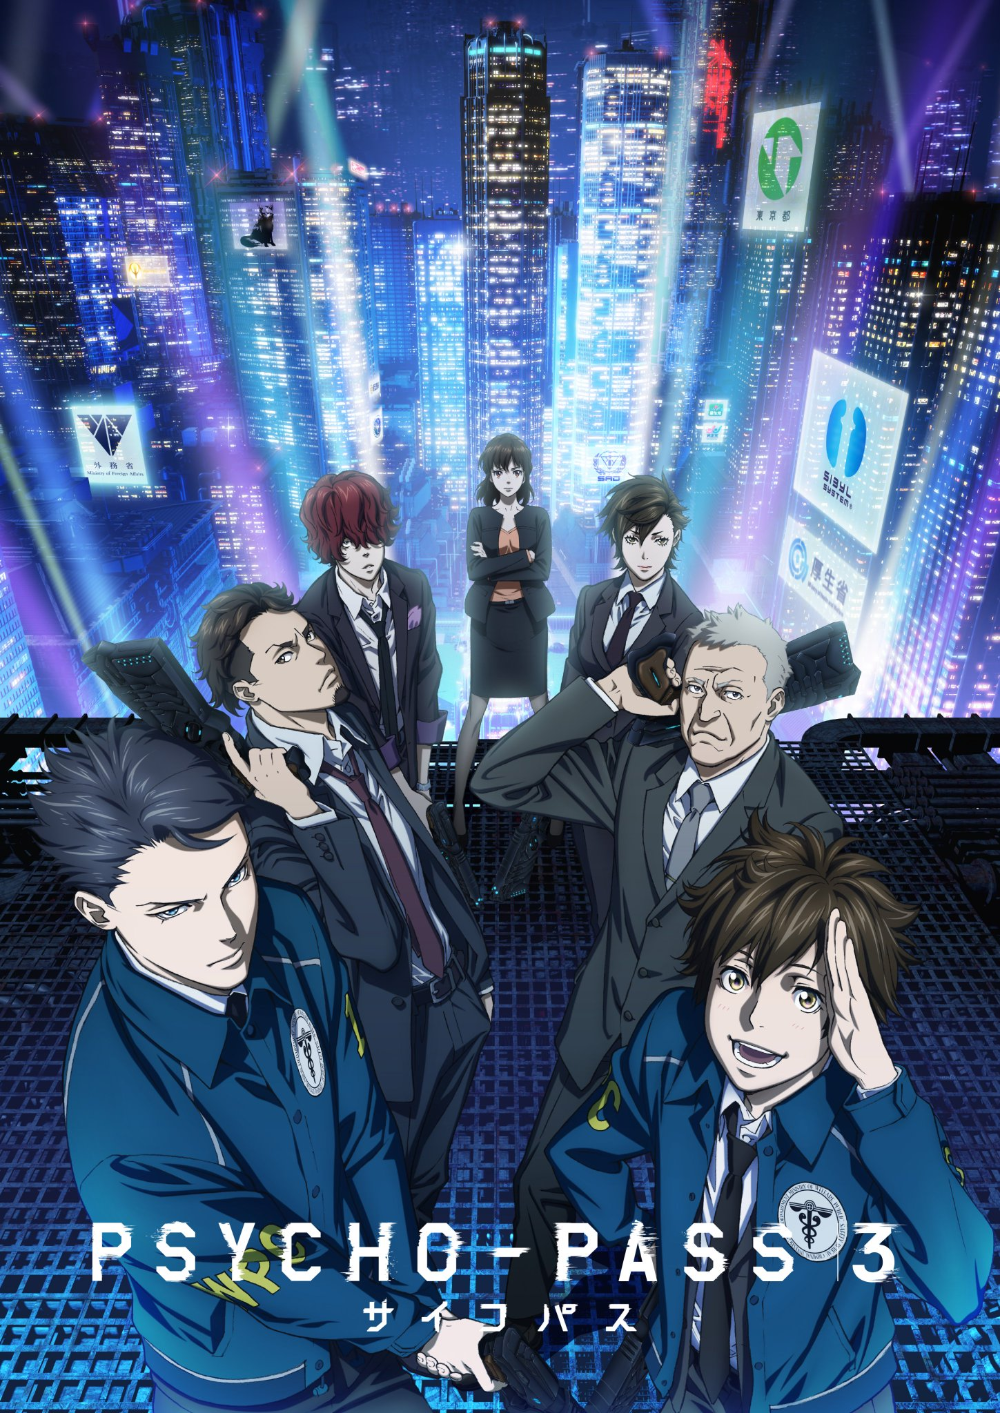 Pin by *+ Lorraine +* on Anime Psycho pass, Psychos, Anime